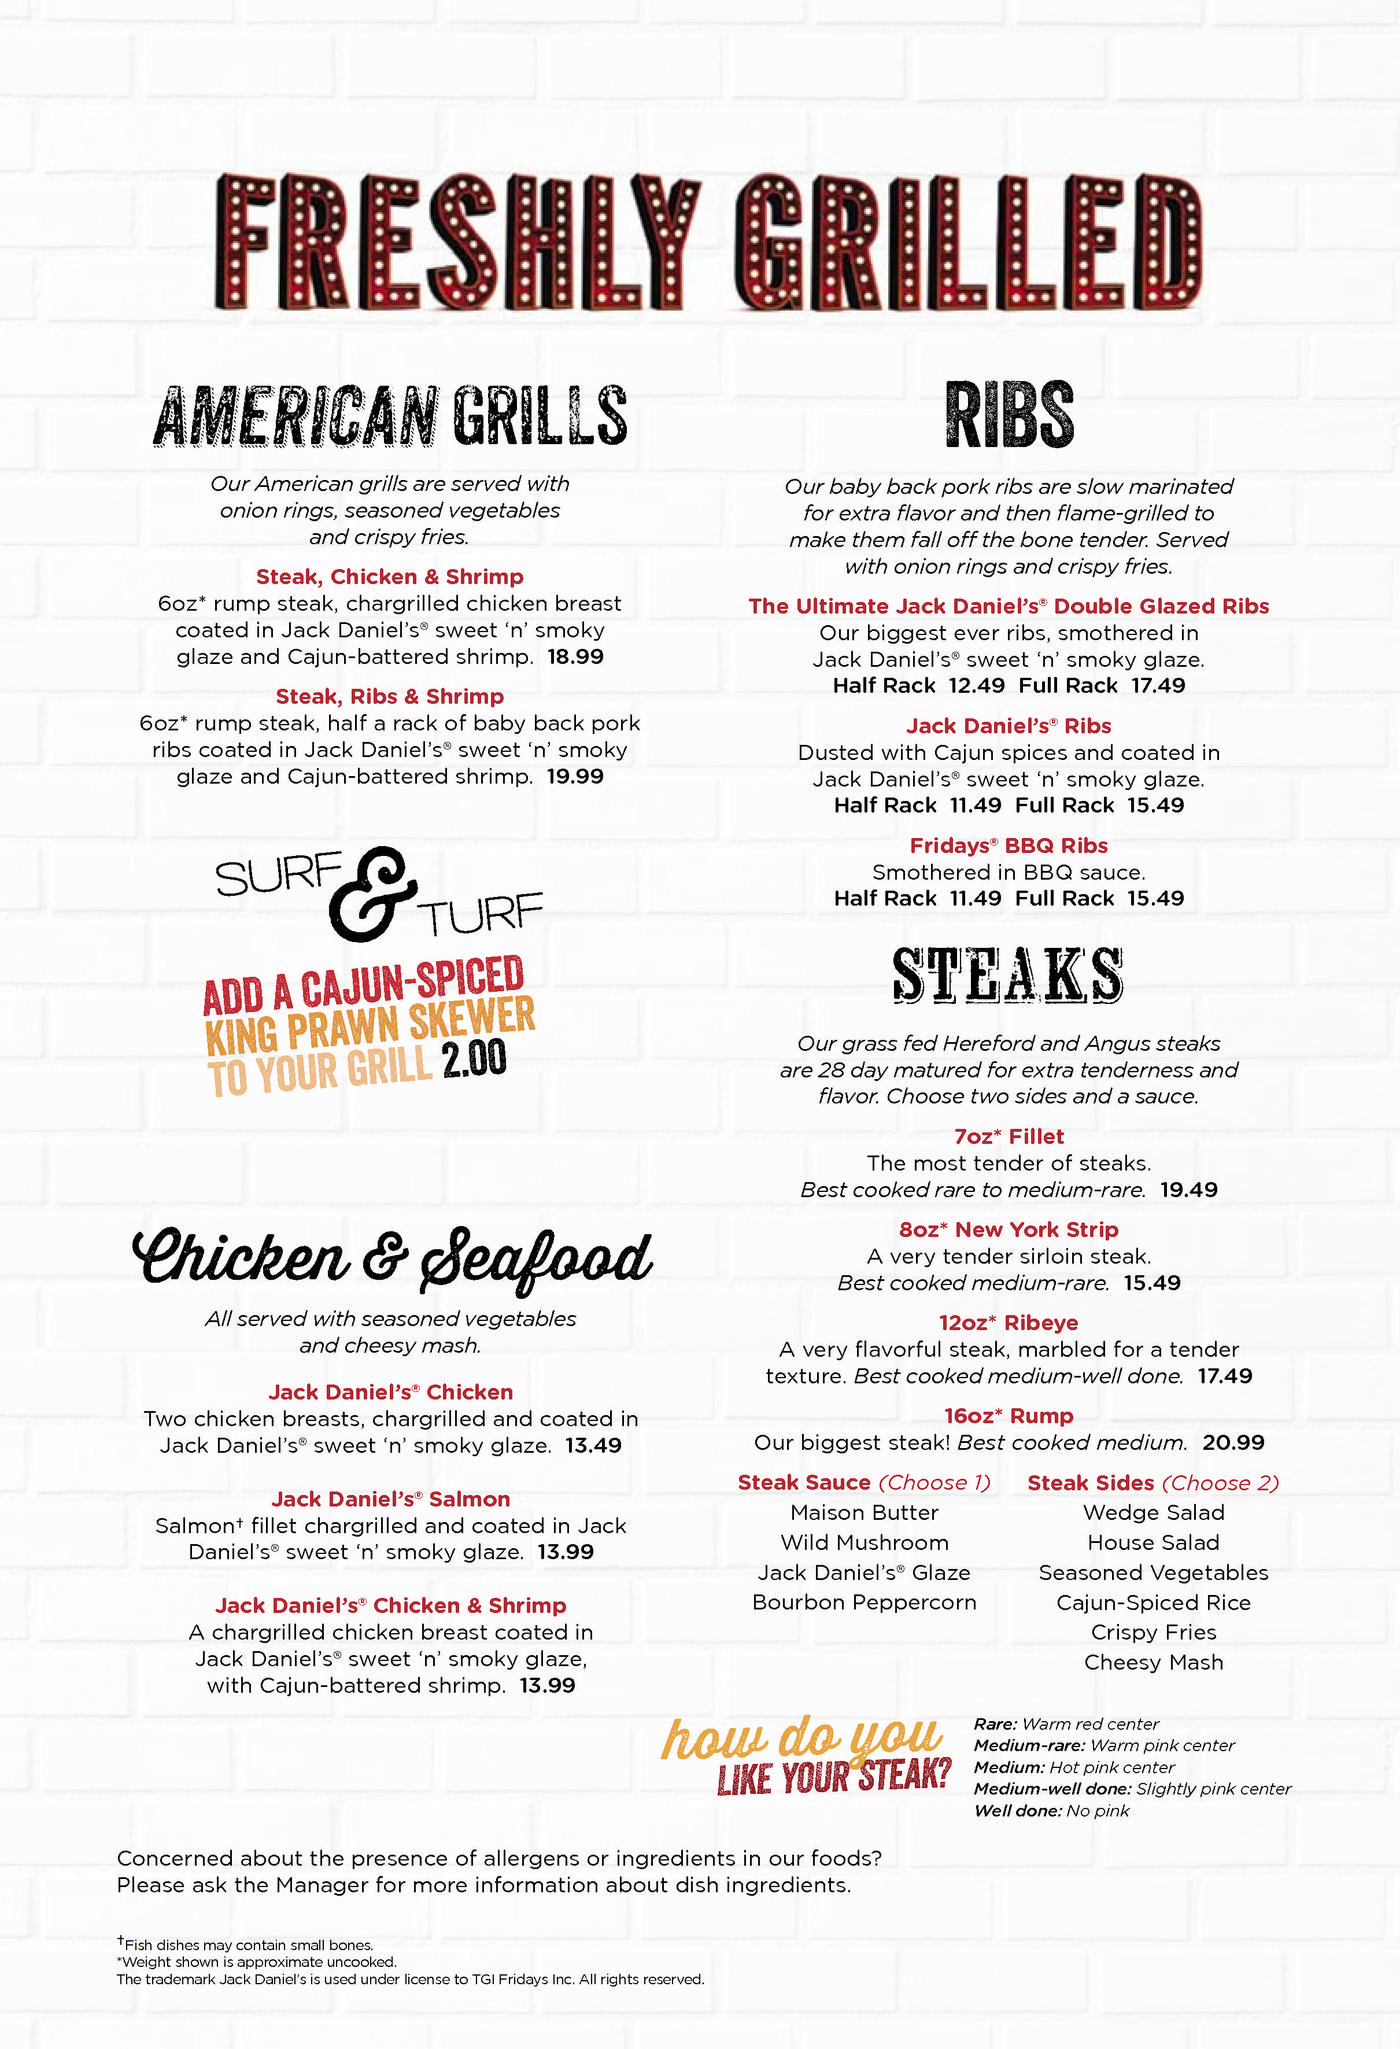 graphic regarding Tgi Fridays Printable Coupons called Tgi 2 for 20 menu : Eco-friendly bay wi lambeau business